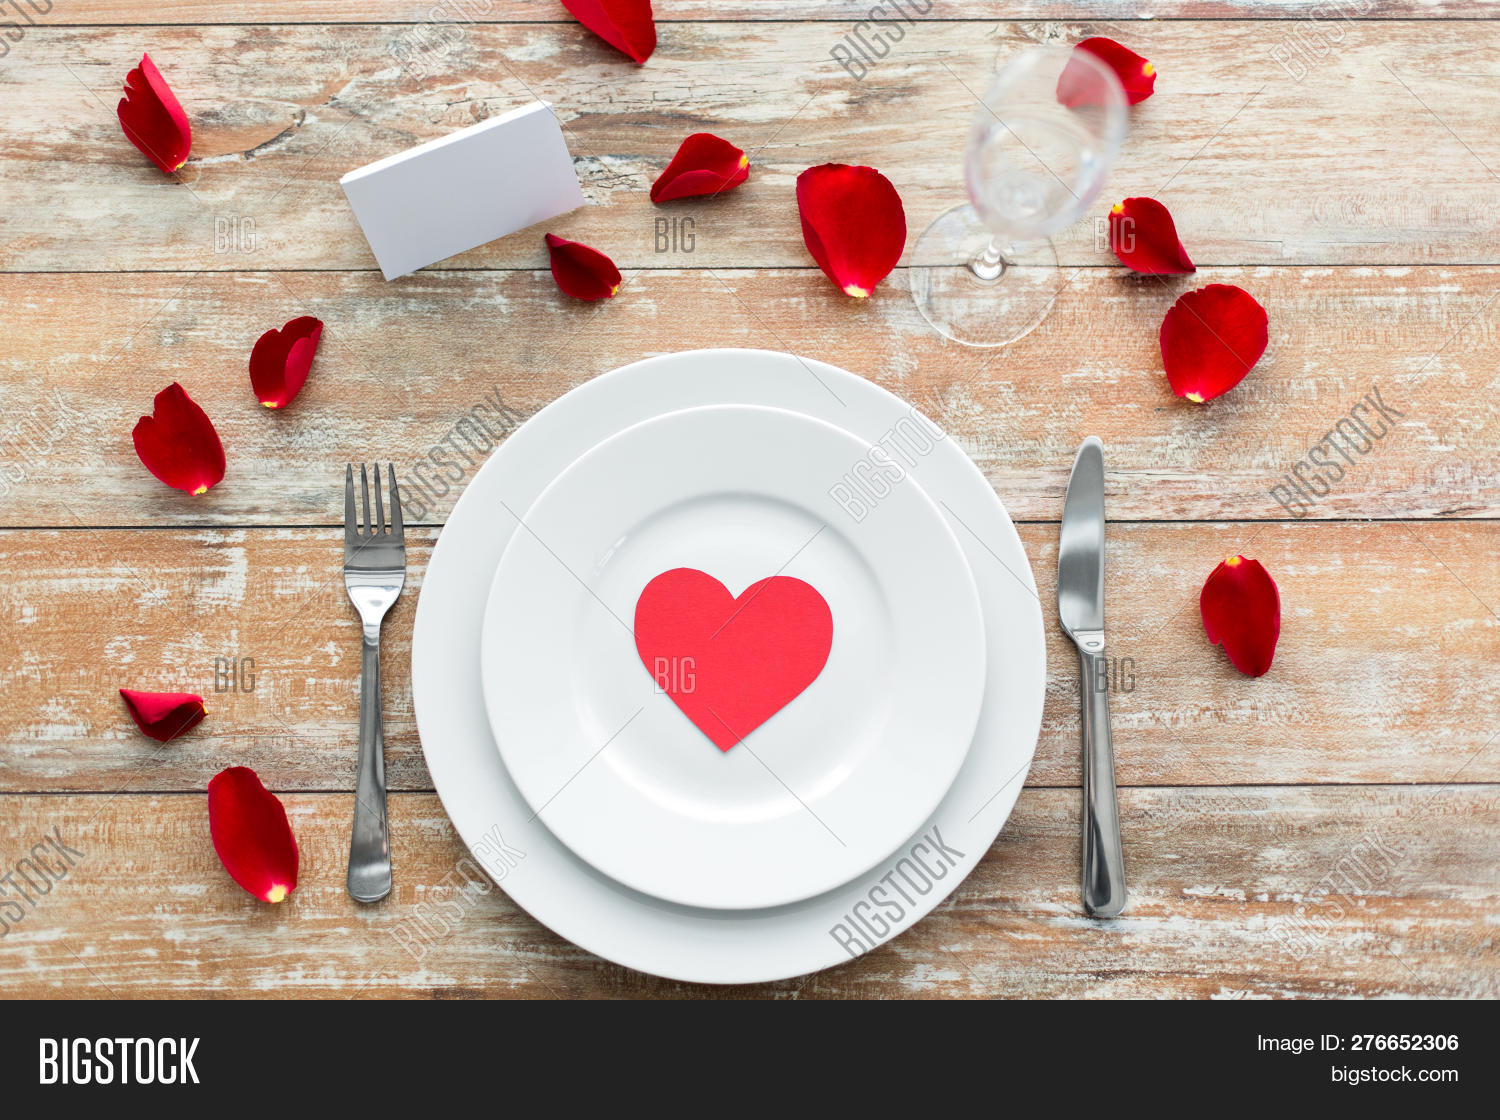 Valentines Day Table Image Photo Free Trial Bigstock